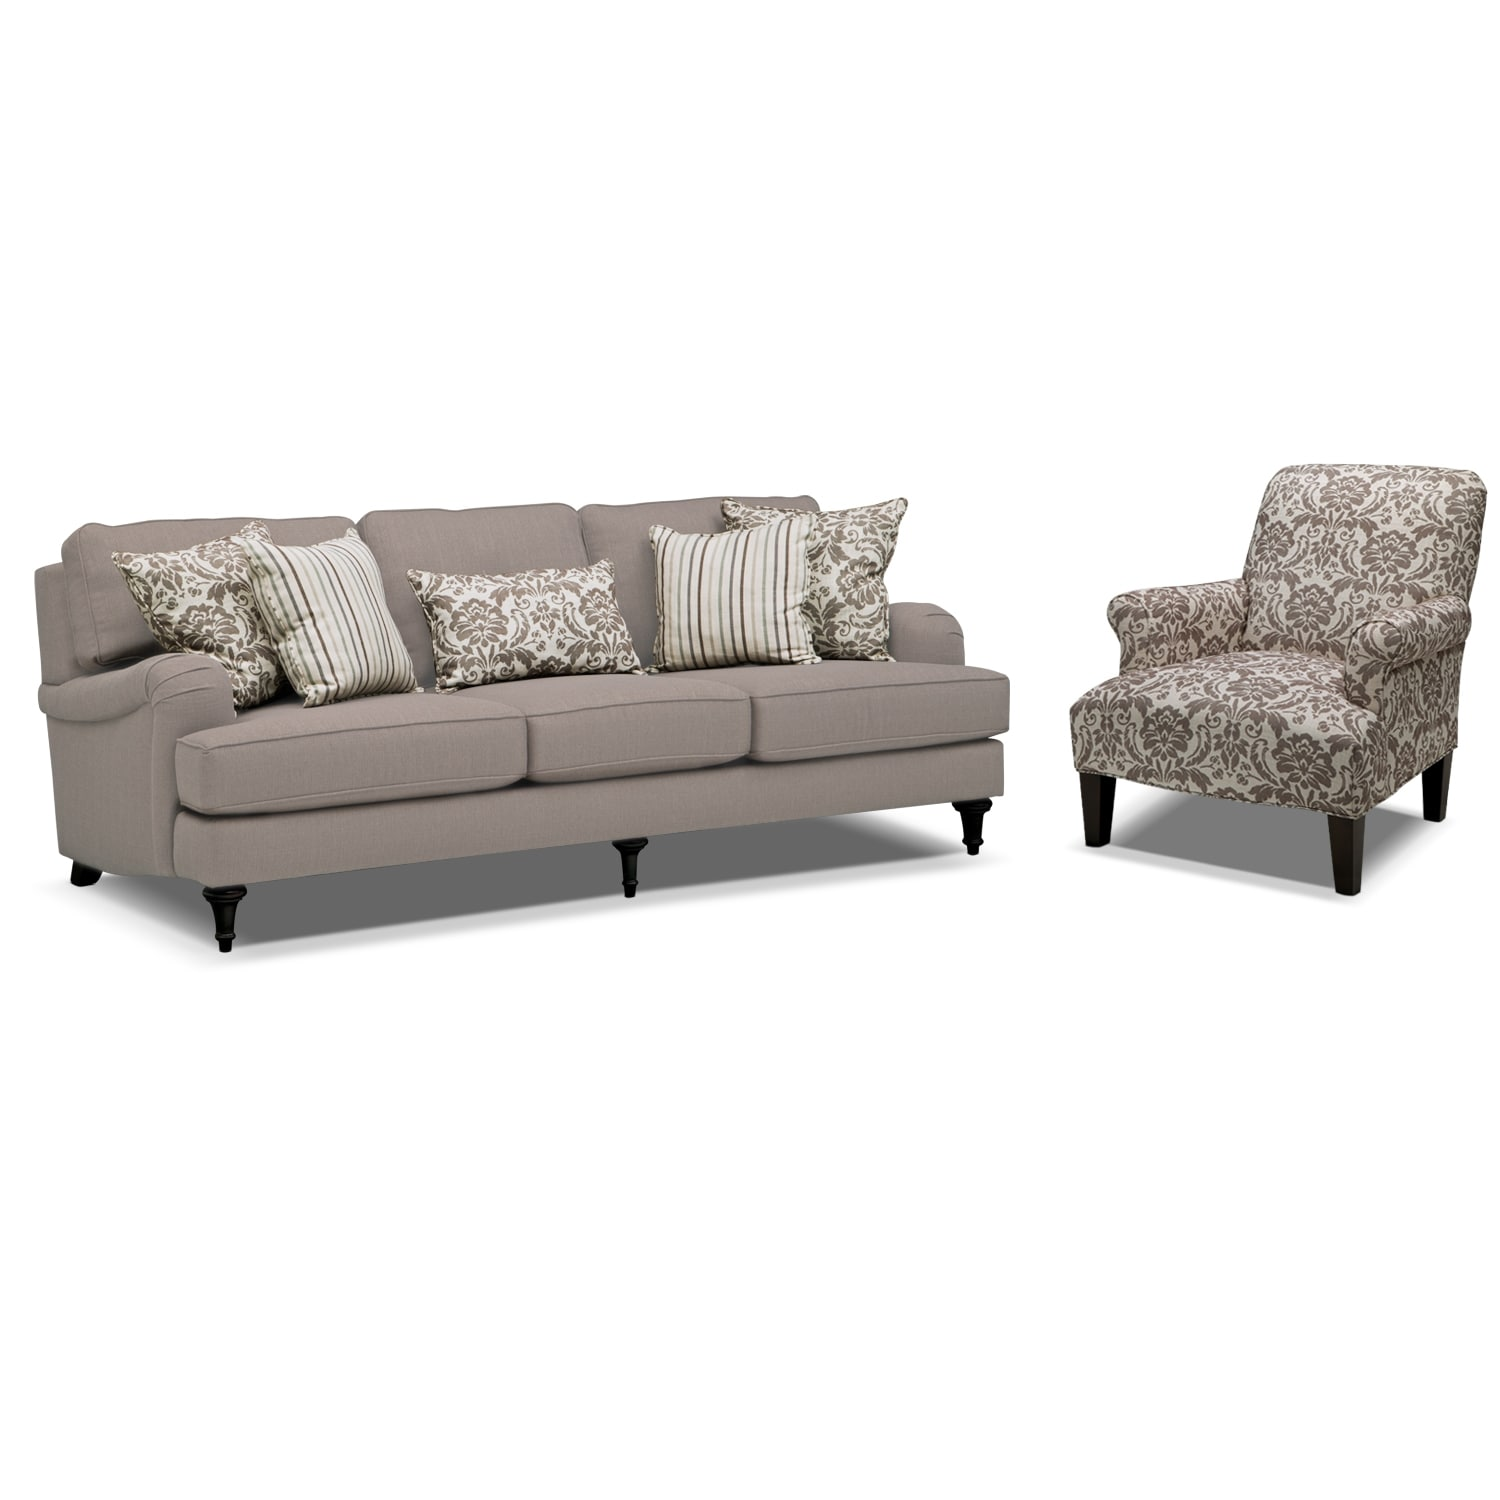 Living Room Furniture - Candice 2 Pc. Living Room w/ Accent Chair